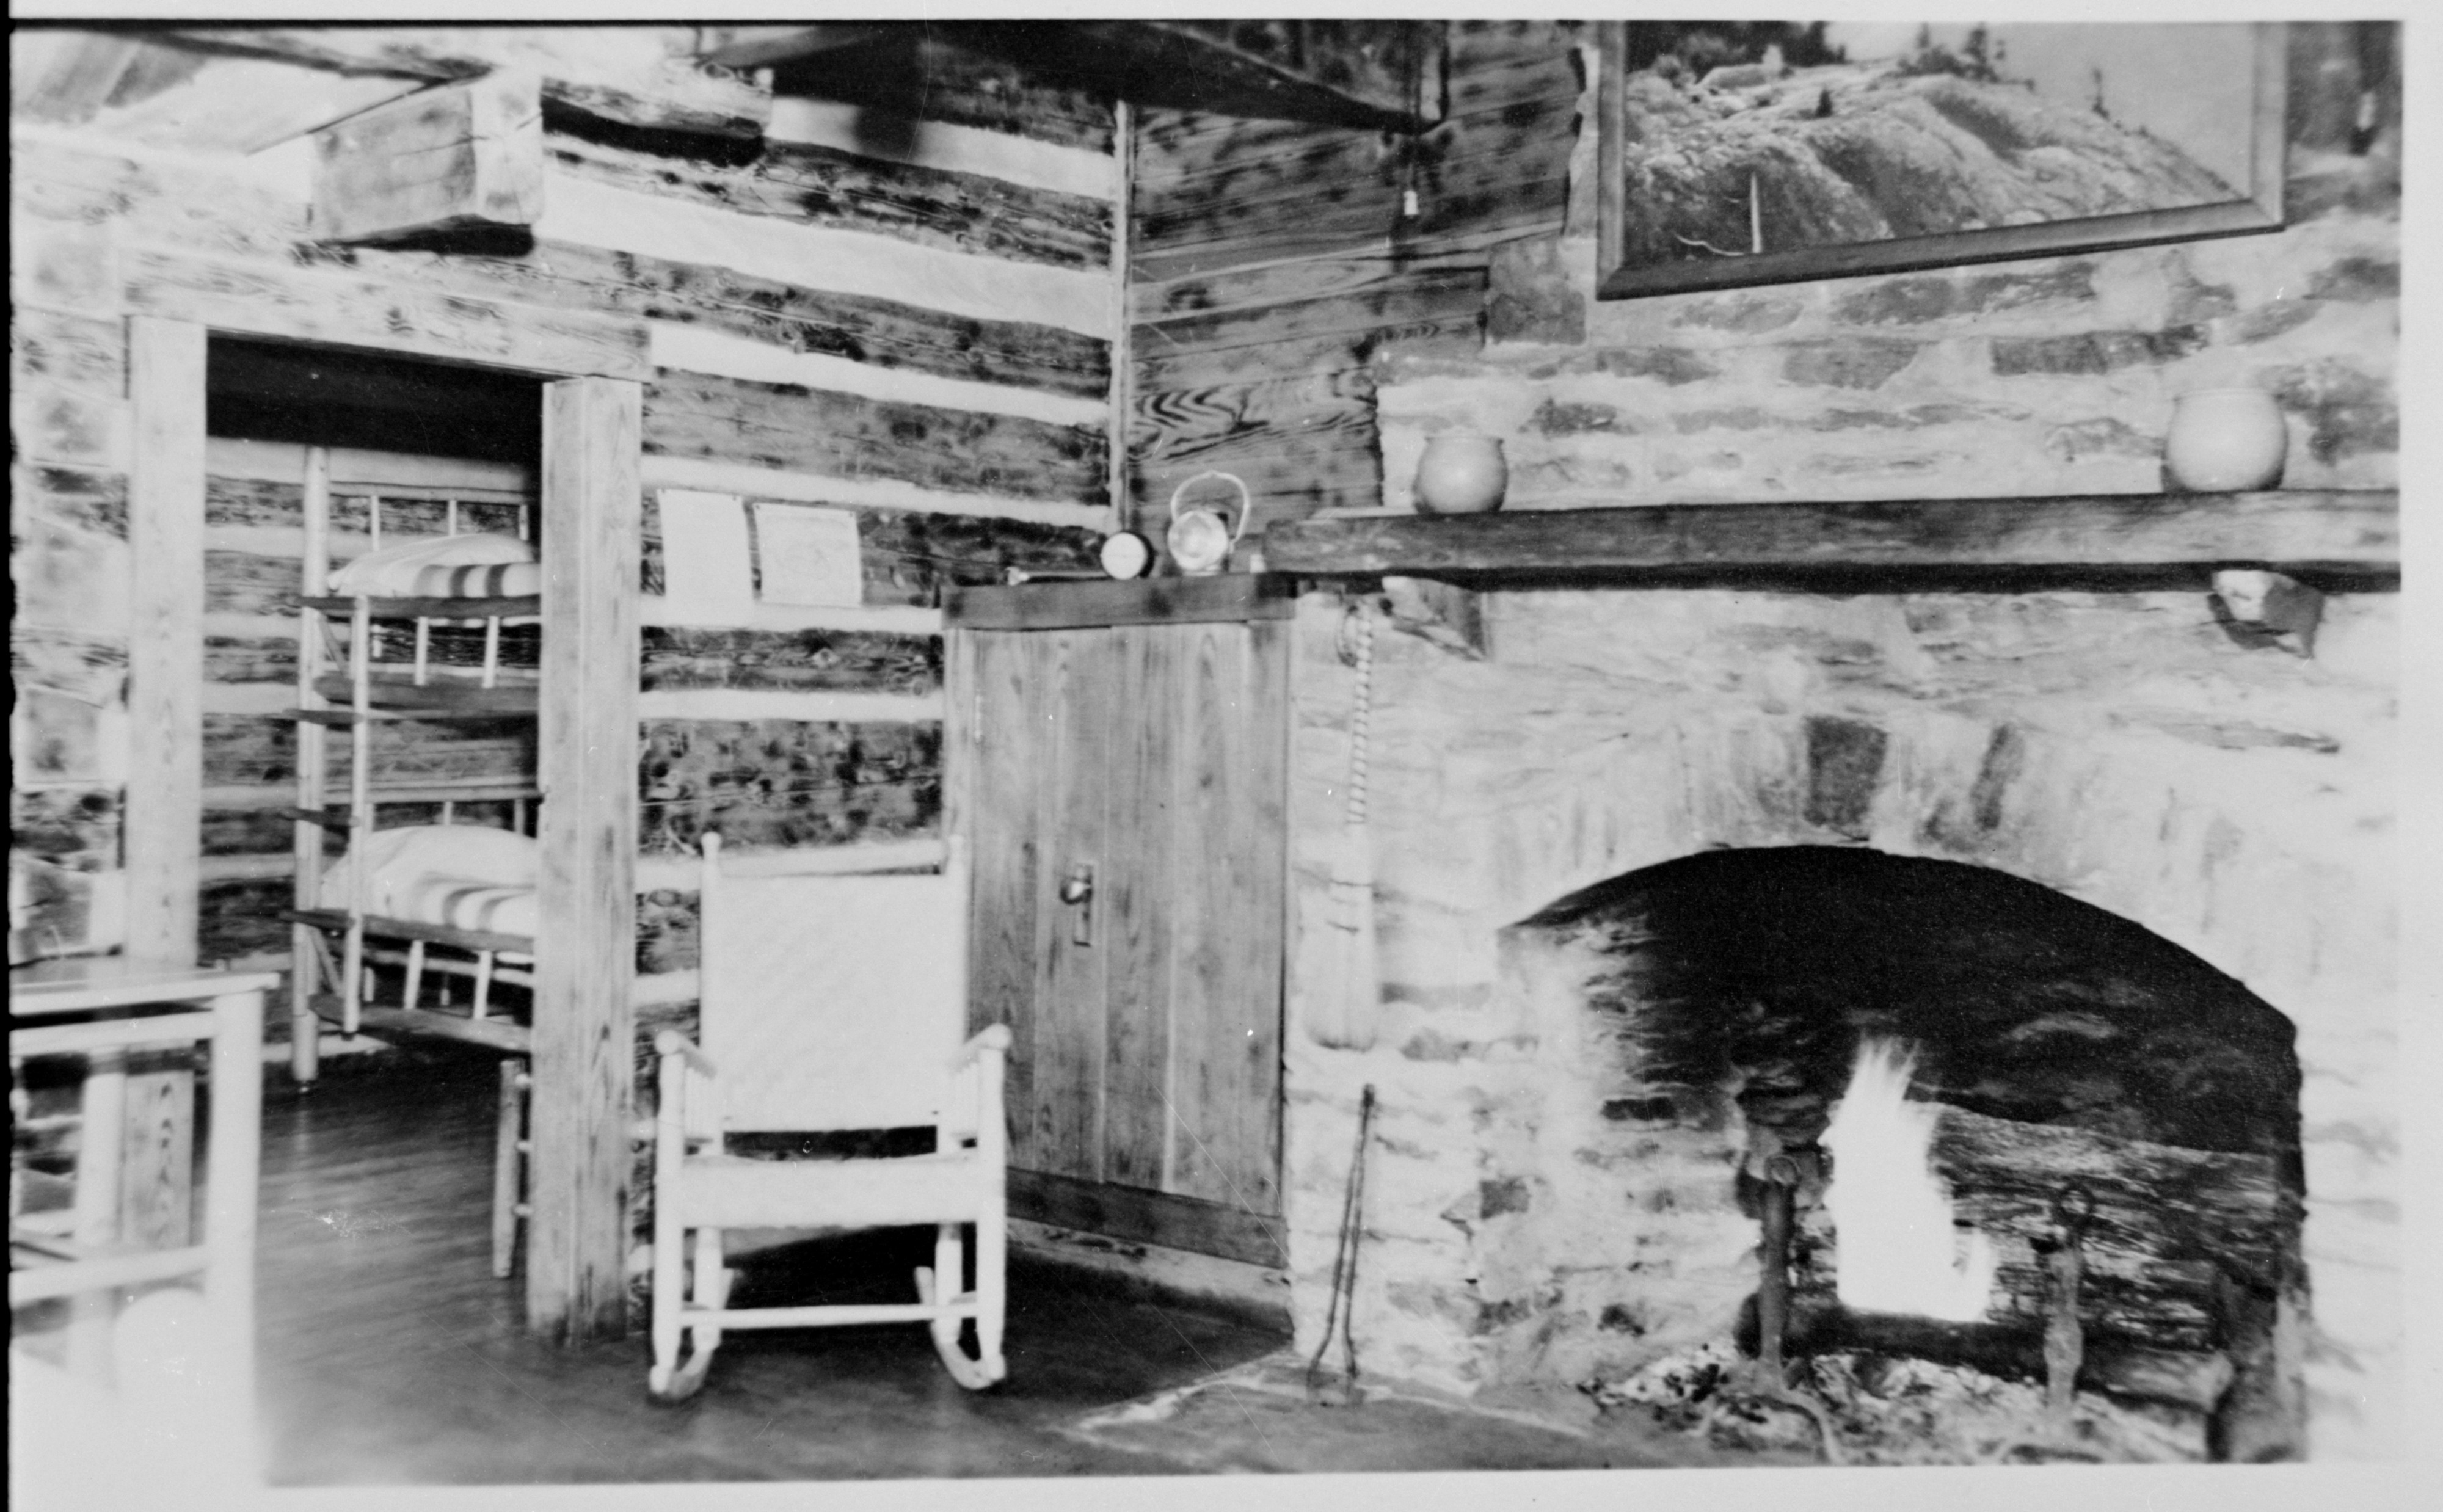 LeConte Lodge, circa 1937. Photo by Jack Huff, courtesy Open Parks Network.